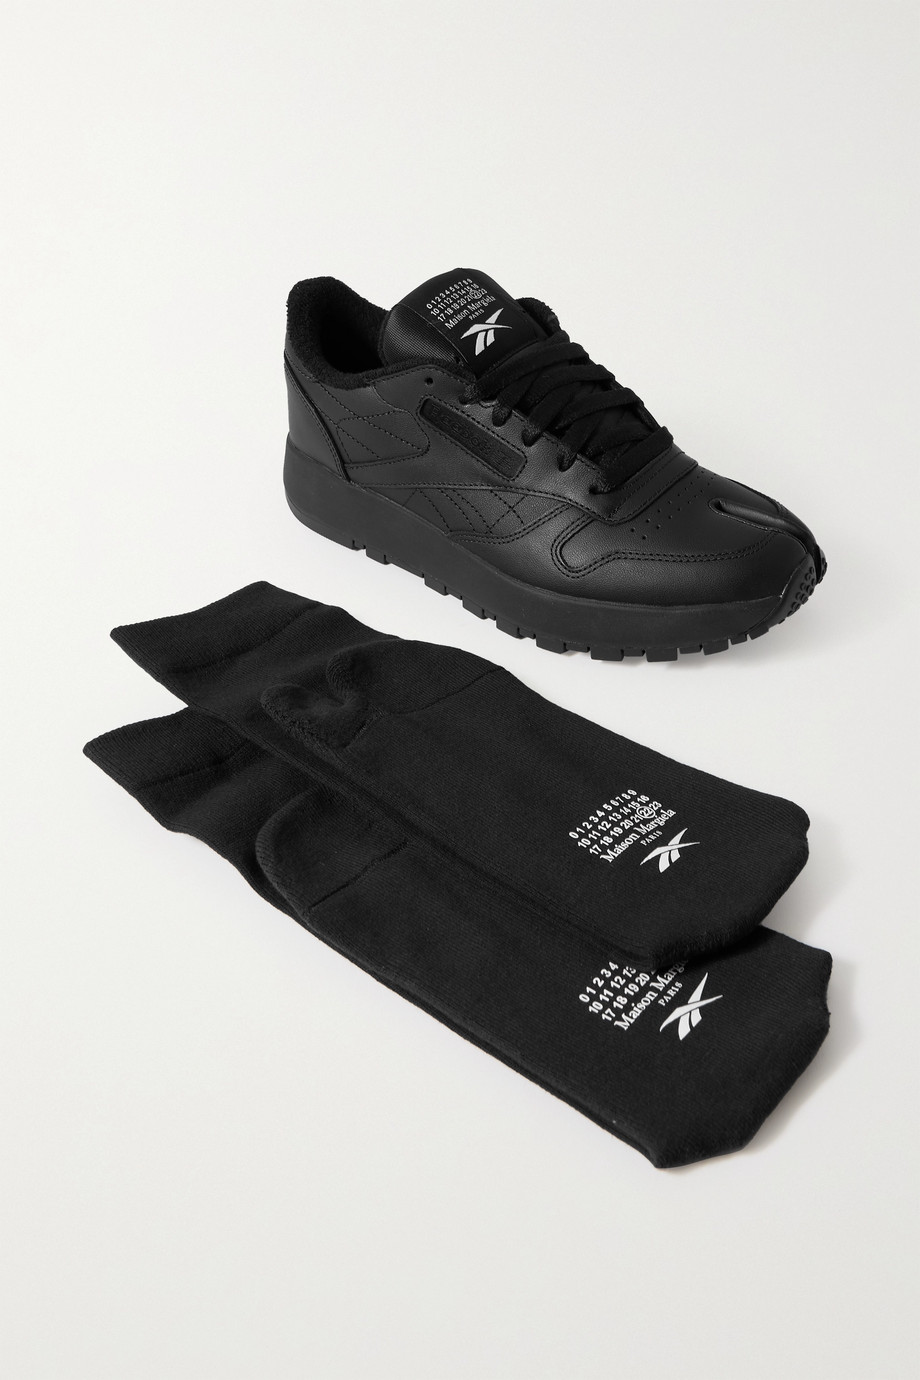 REEBOK + Maison Margiela Tabi split-toe leather sneakers and cotton-blend socks set